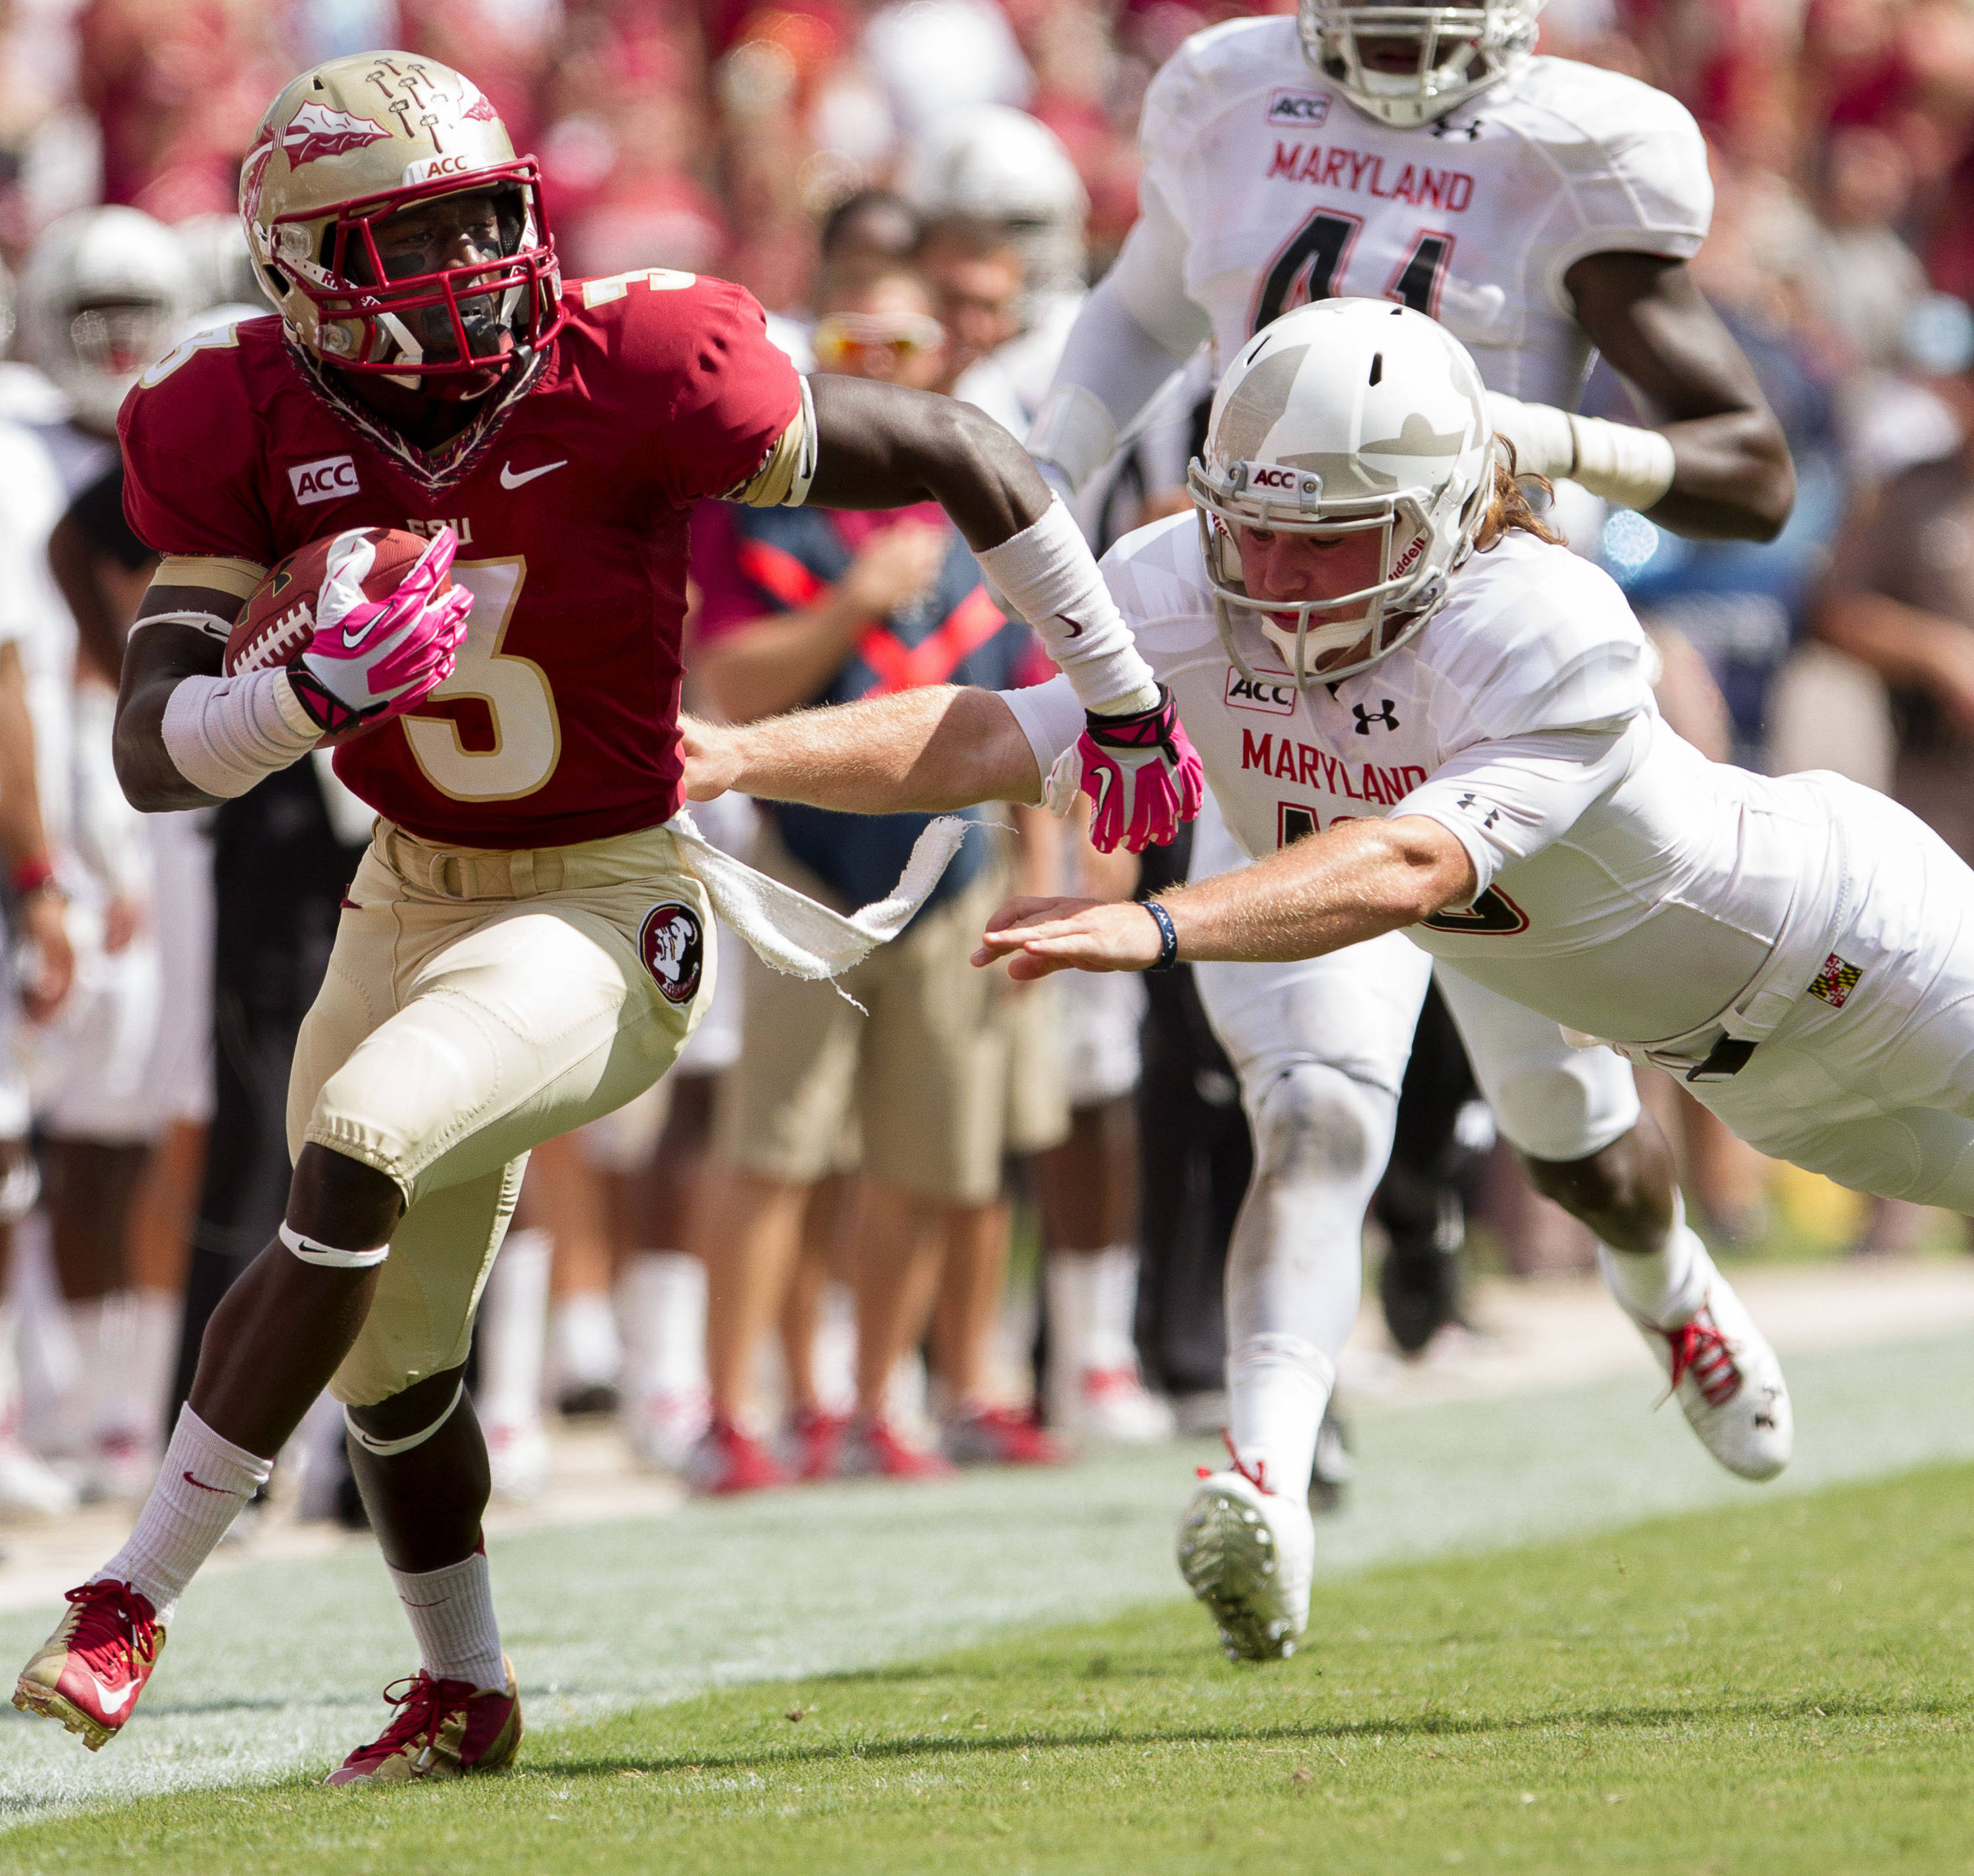 Jesus Wilson (3) carries the ball during FSU Football's 63-0 shutout of Maryland on Saturday, October 5, 2013 in Tallahassee, Fla.